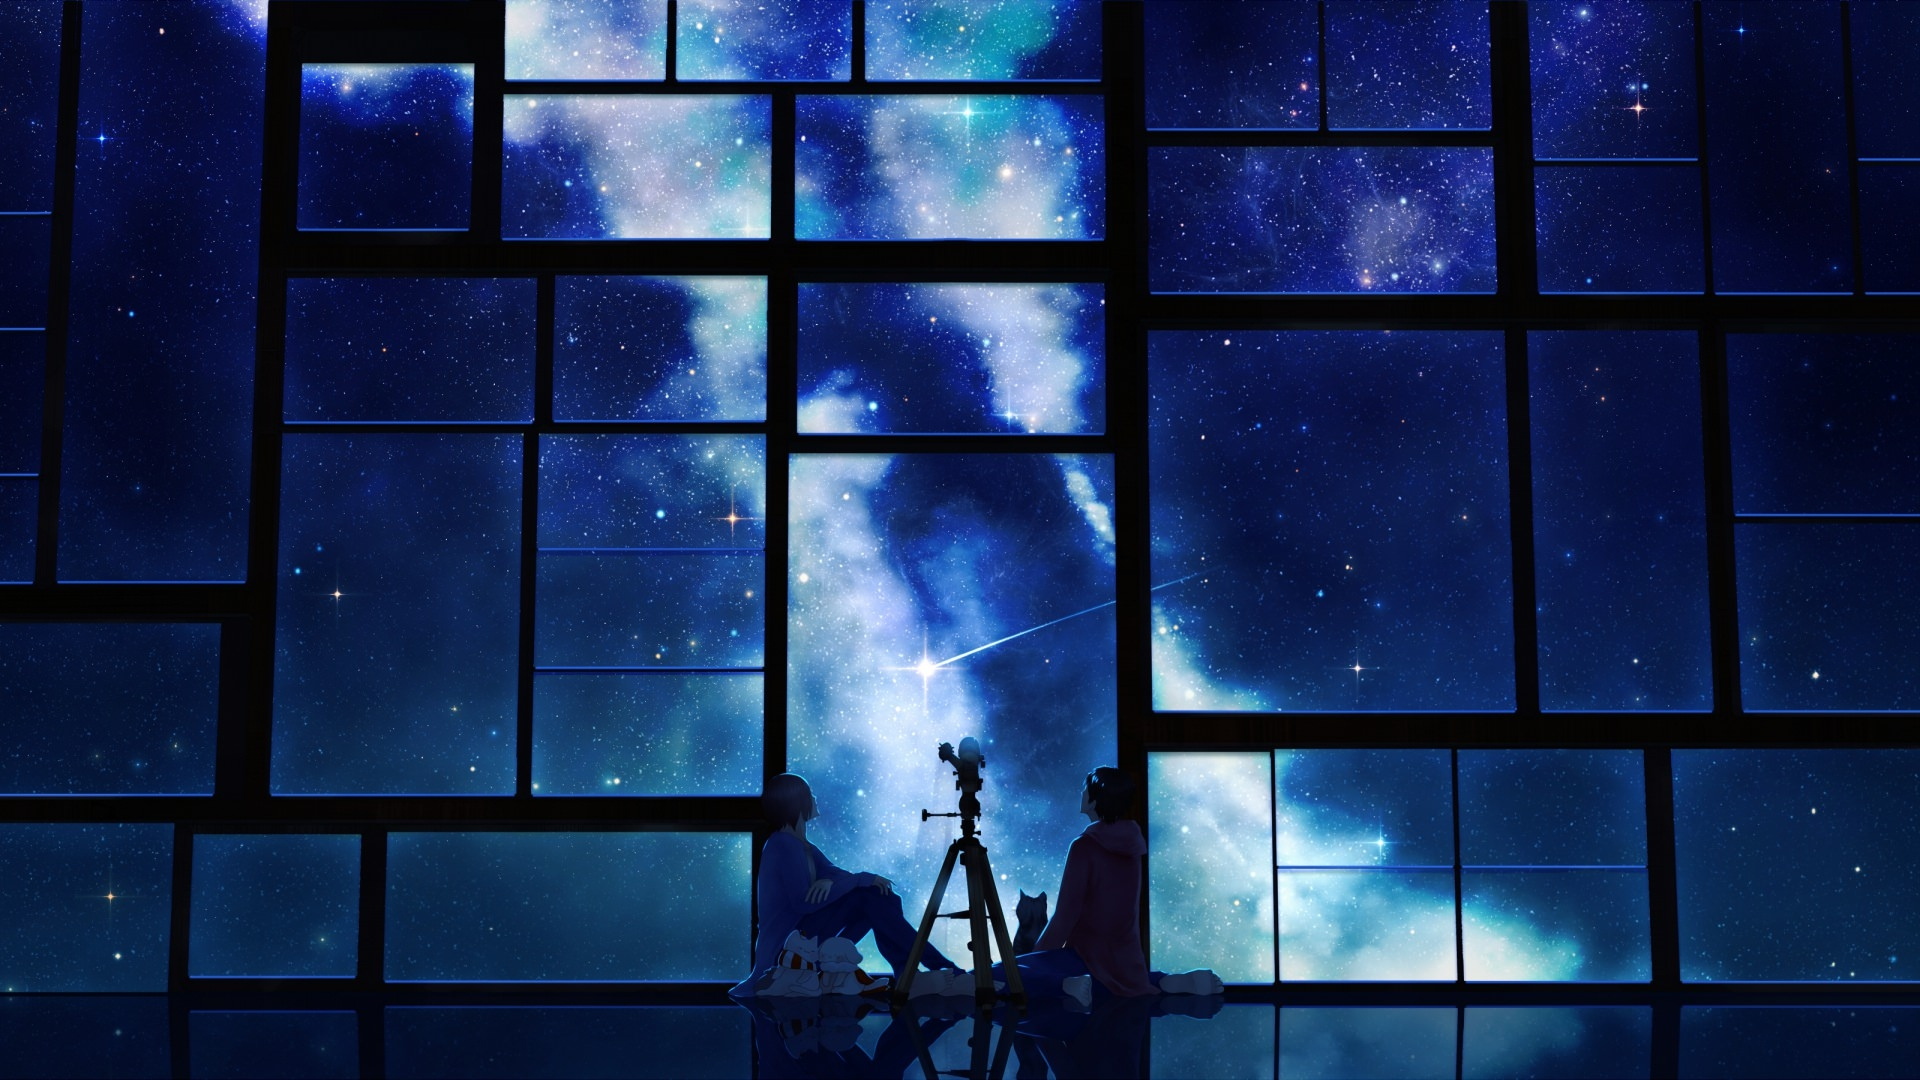 Sky Anime Background